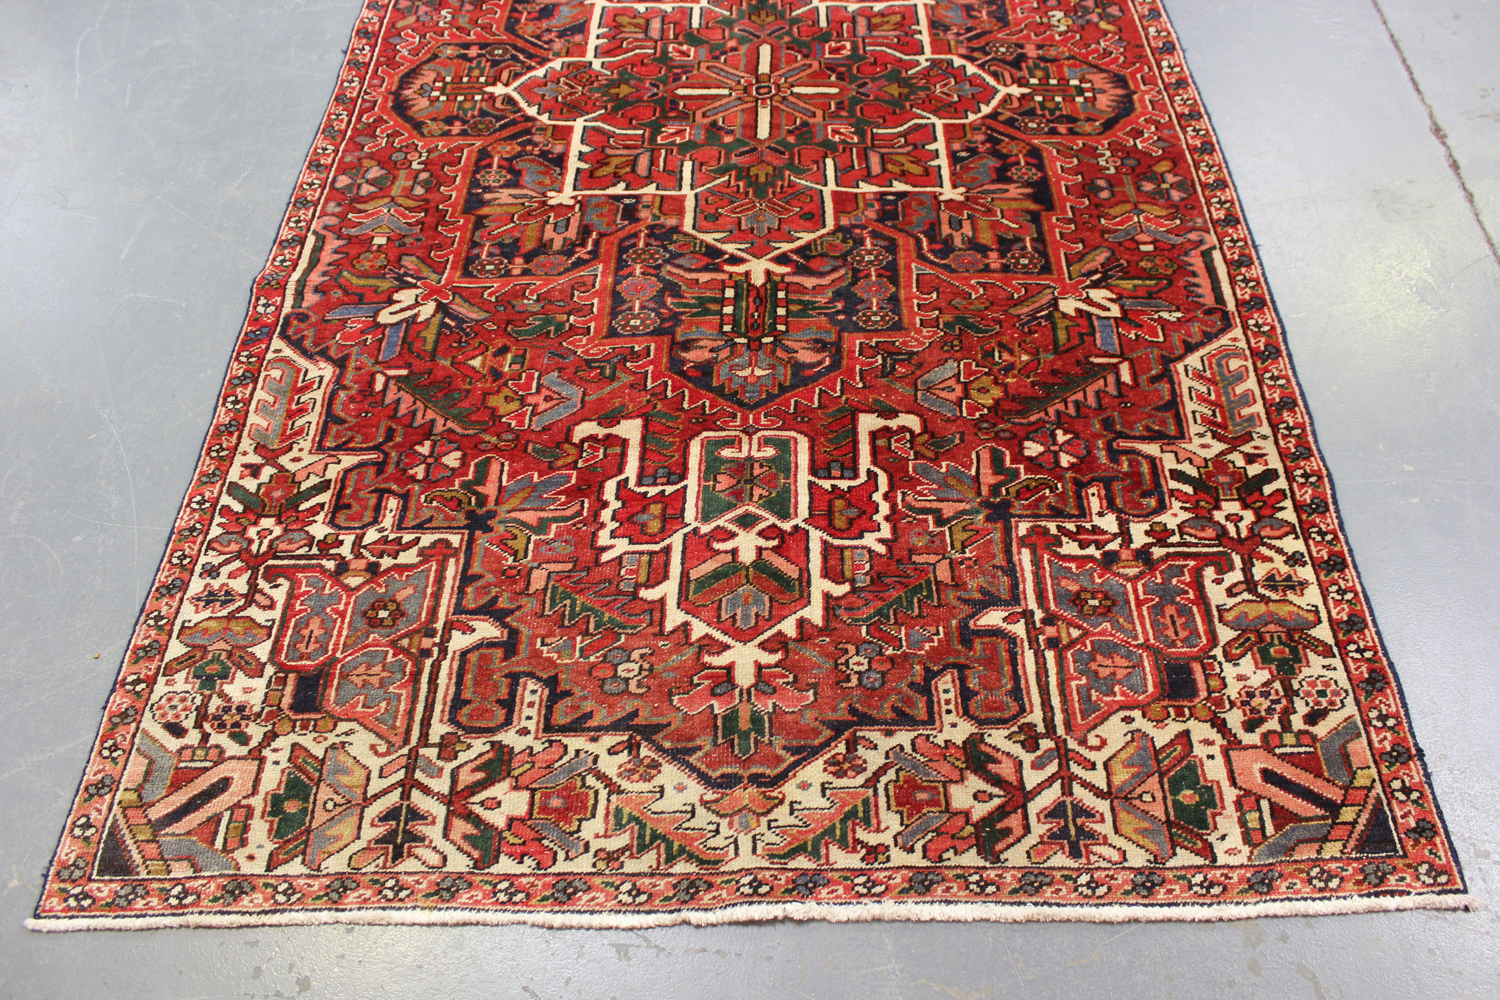 A Heriz rug, North-west Persia, mid-20th century, the terracotta field with a bold flowerhead - Image 4 of 5